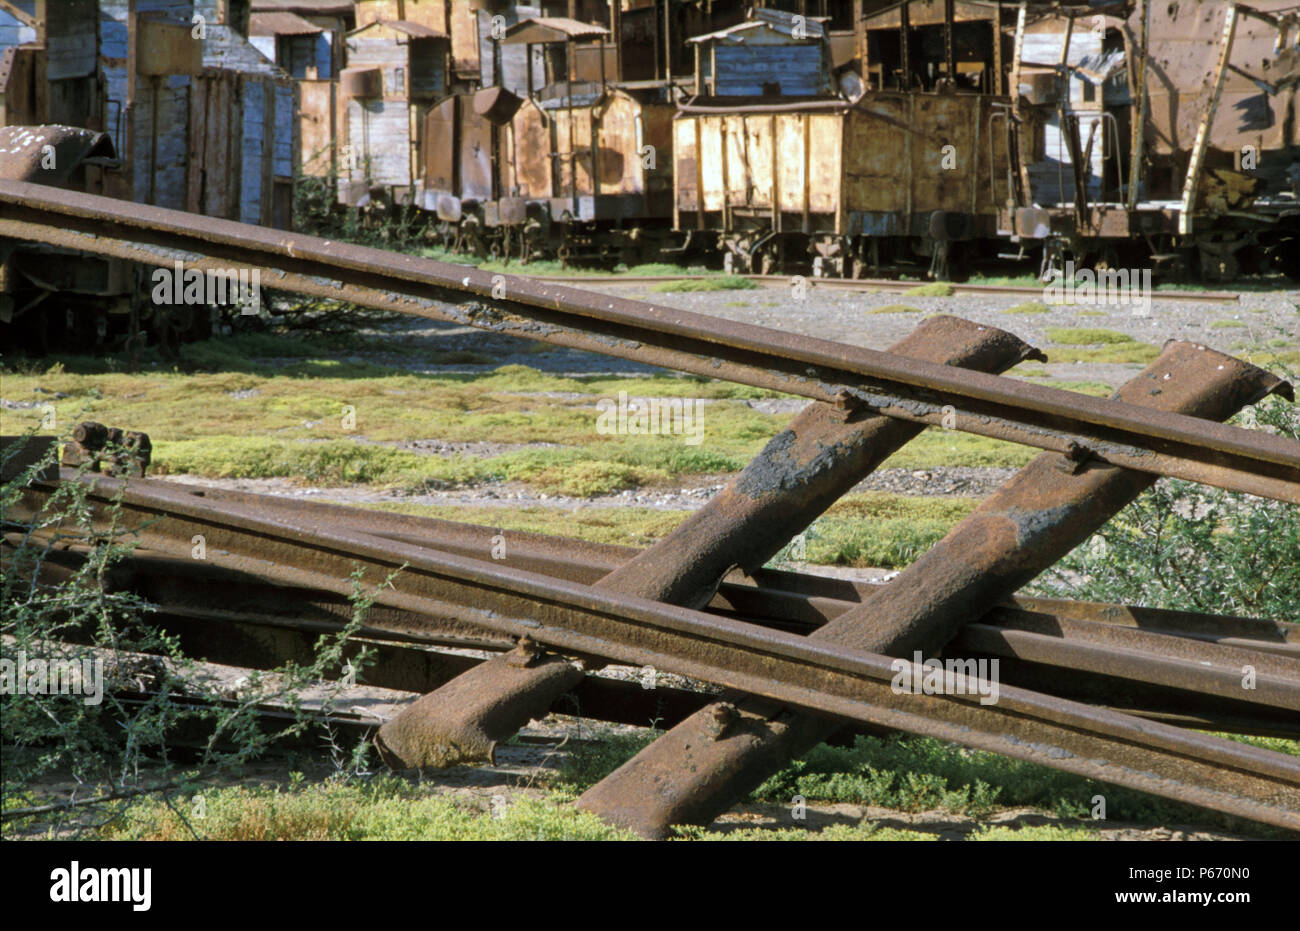 The rebuilding of Eritrea's railway between Masawa on  the Red Sea Coast and Asmara the capital, following 30 years of abandonment and Civil War, was  - Stock Image